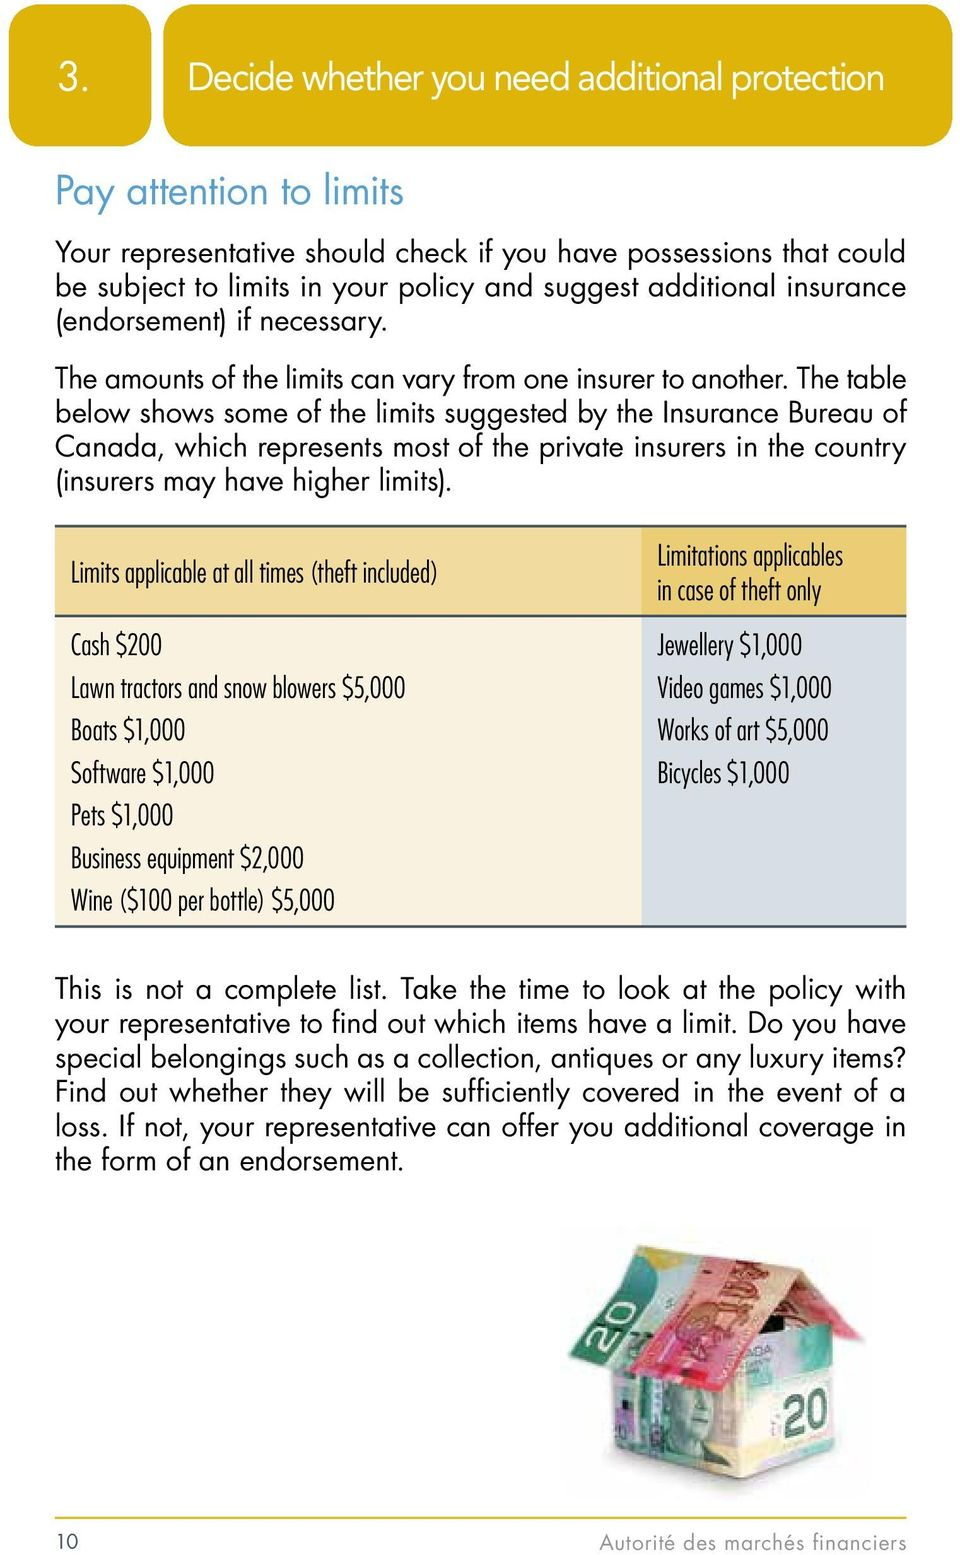 The table below shows some of the limits suggested by the Insurance Bureau of Canada, which represents most of the private insurers in the country (insurers may have higher limits).